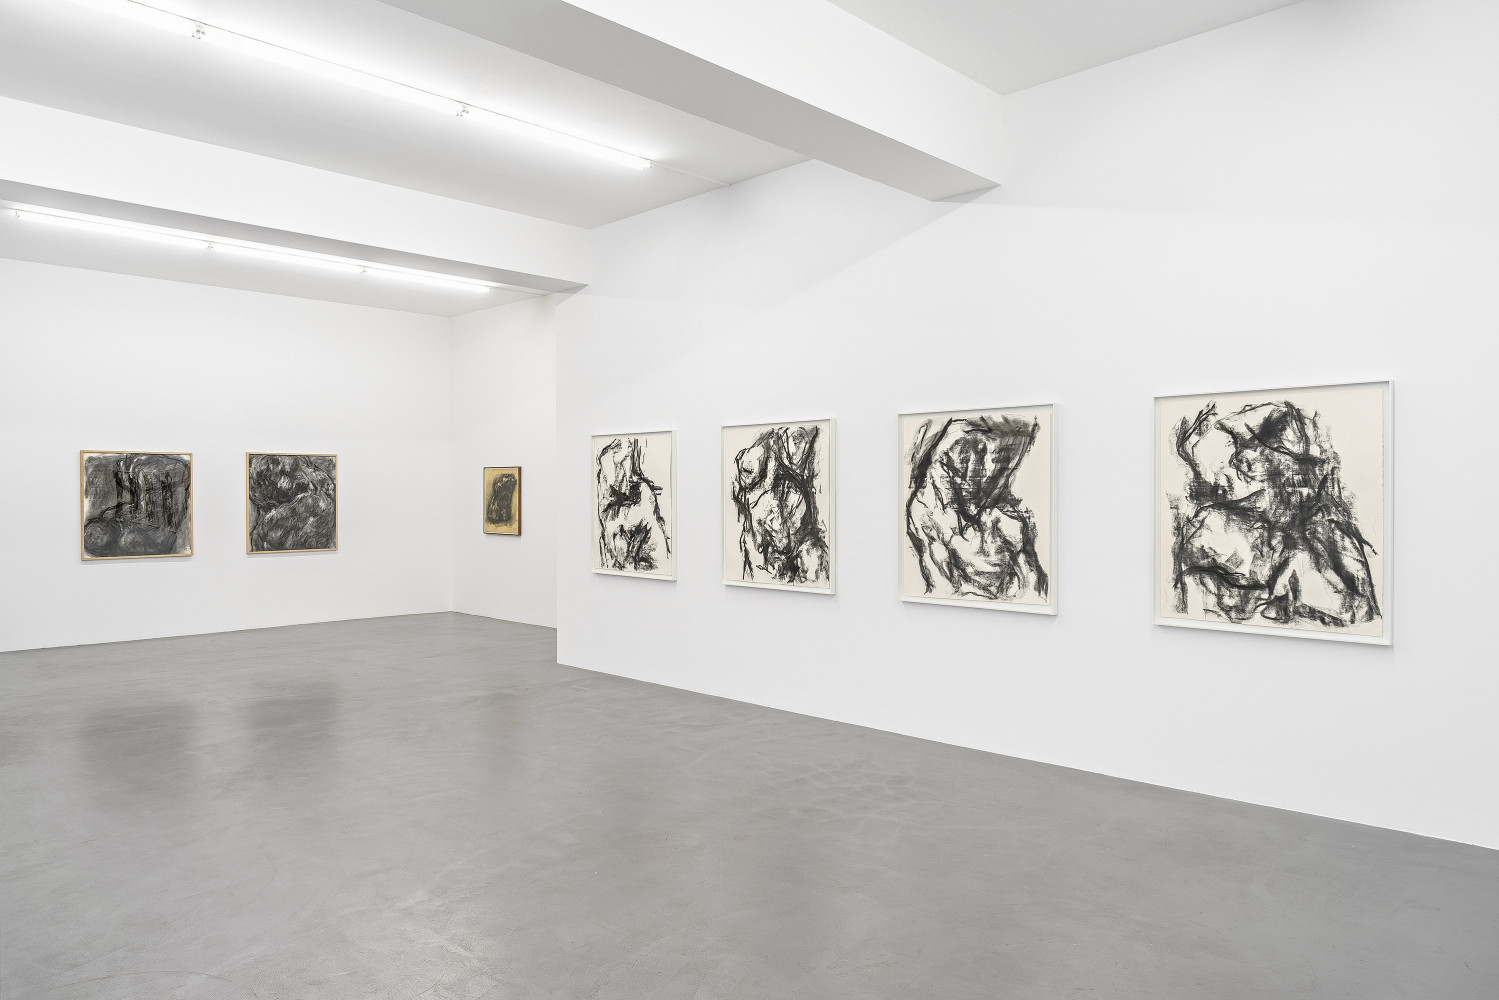 William Tucker, 'William Tucker - Charcoal Drawings', Installation view, Buchmann Galerie, 2017